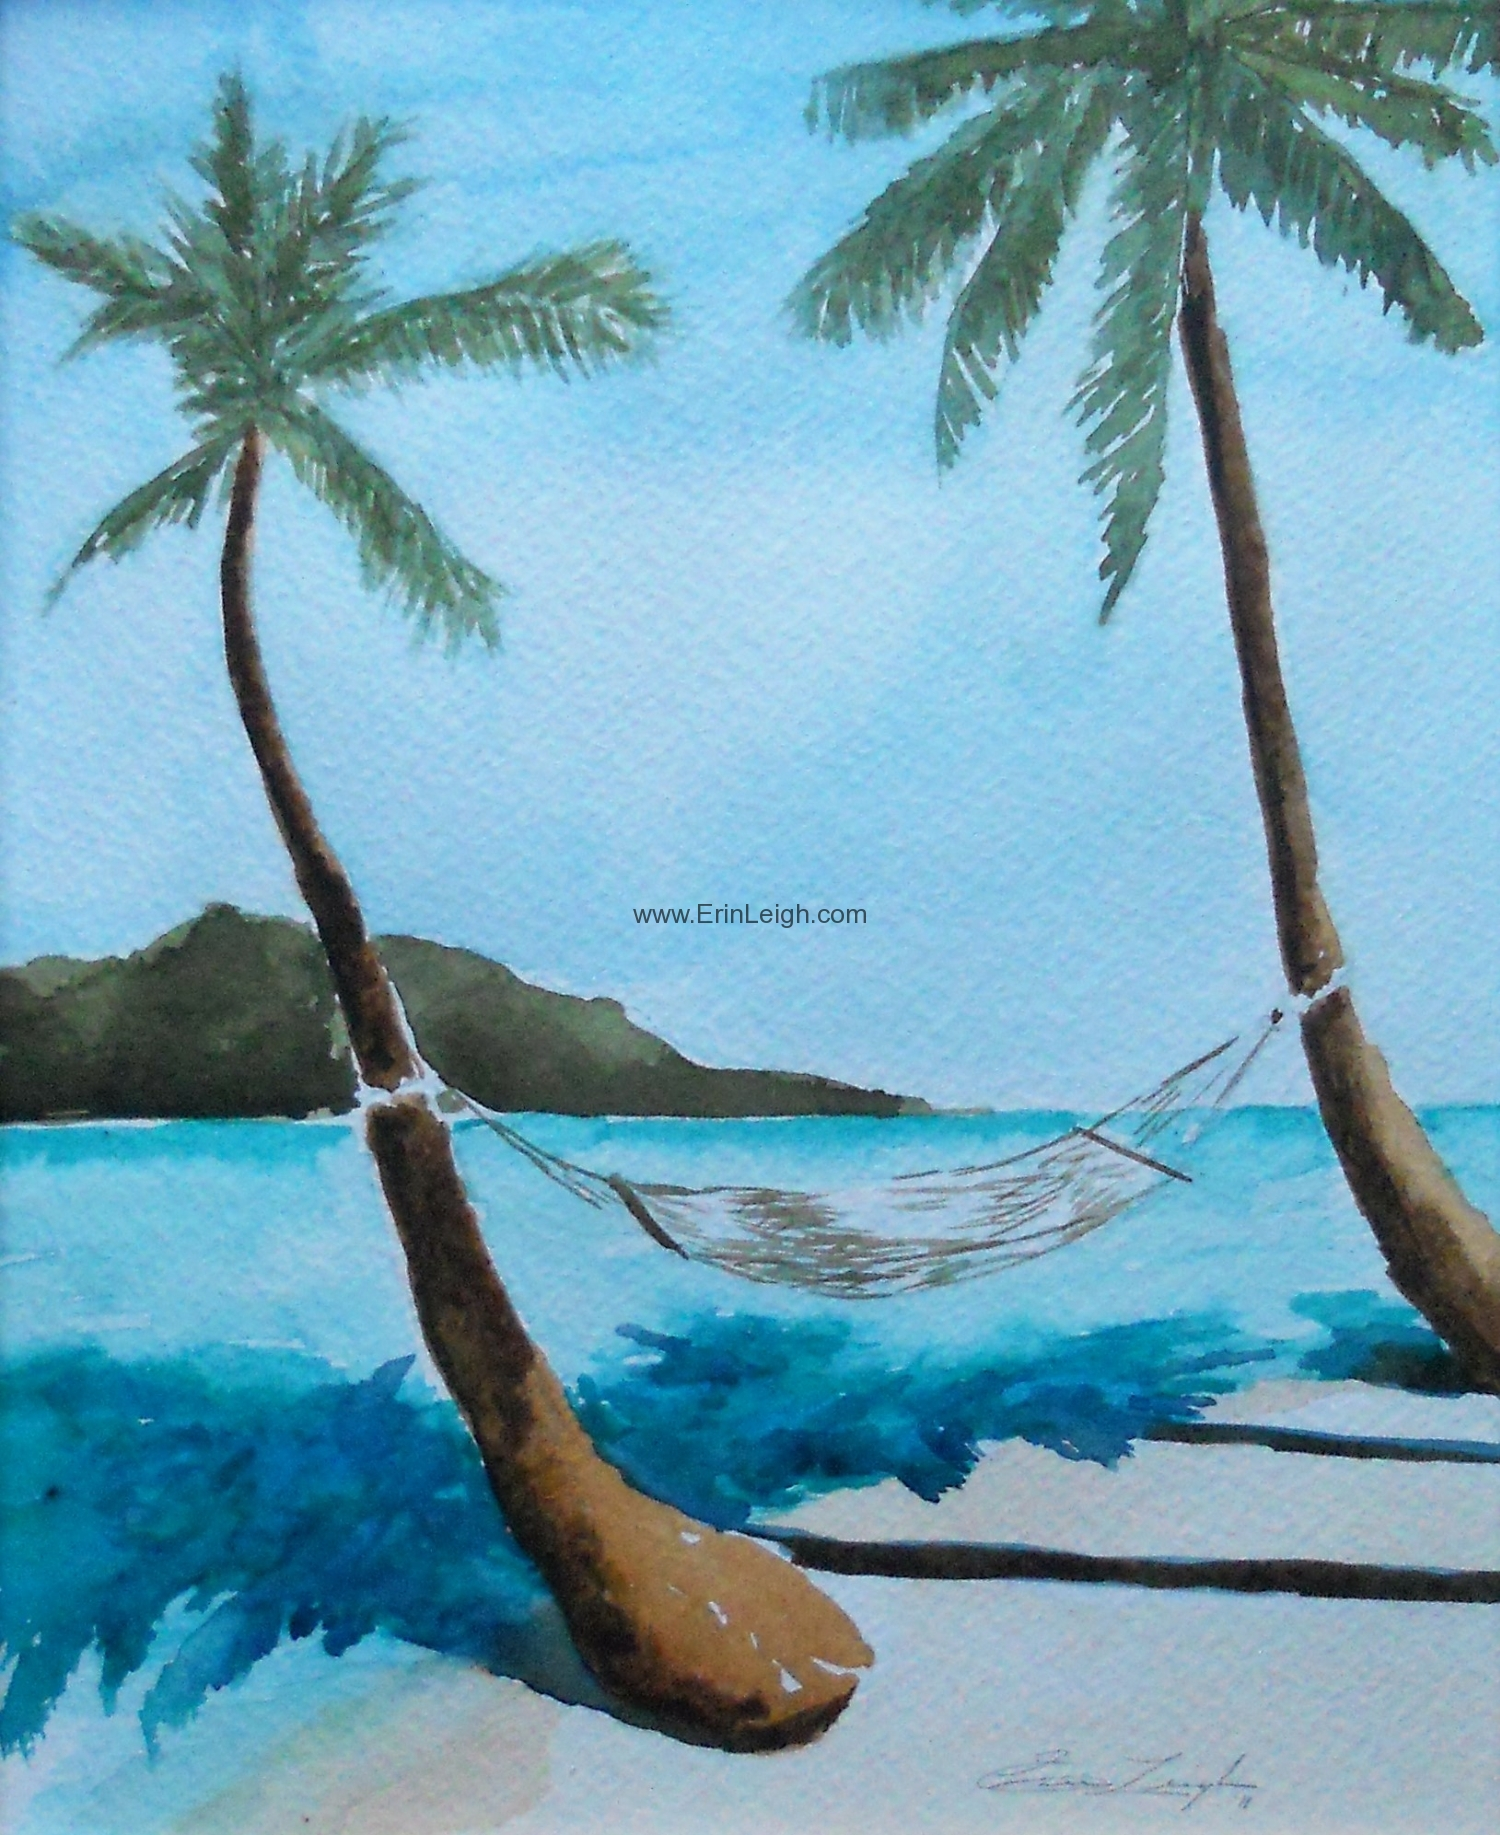 Jamaica Me Happy by Erin Leigh